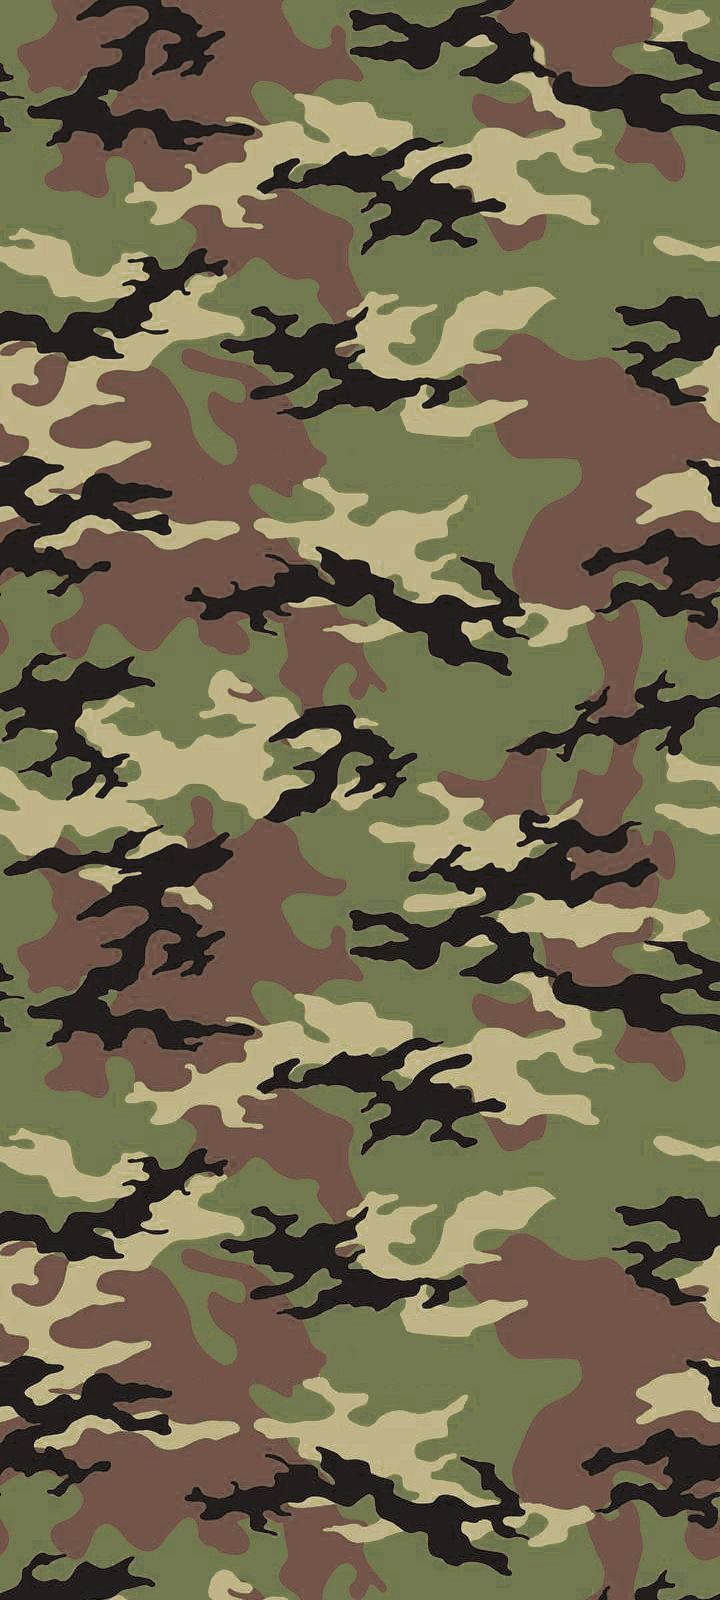 Camouflage Phone Wallpapers Camouflage Wallpaper Abstract Wallpaper Backgrounds Camouflage Patterns